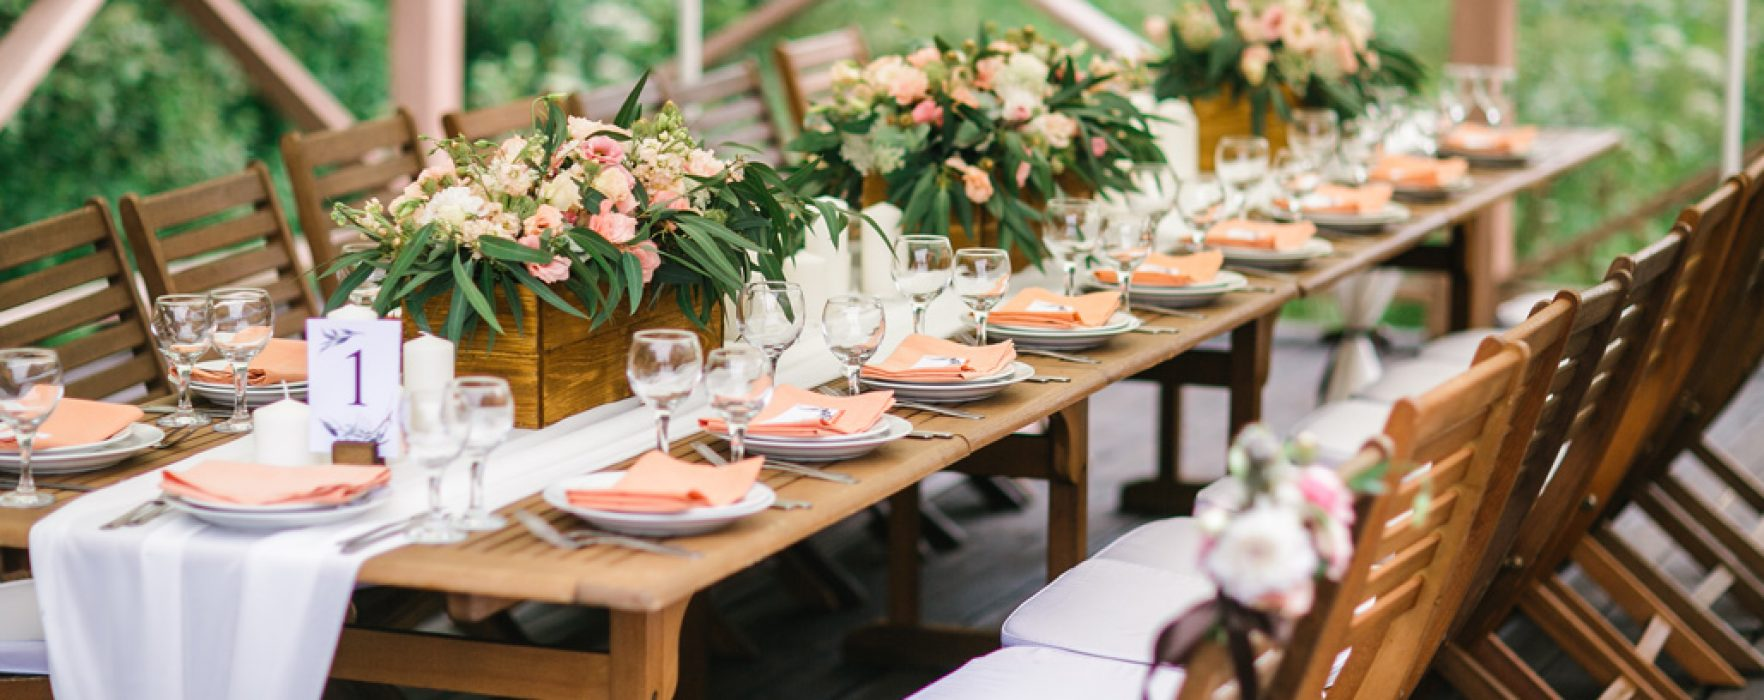 3 Backyard Wedding Themes You're Going to Love